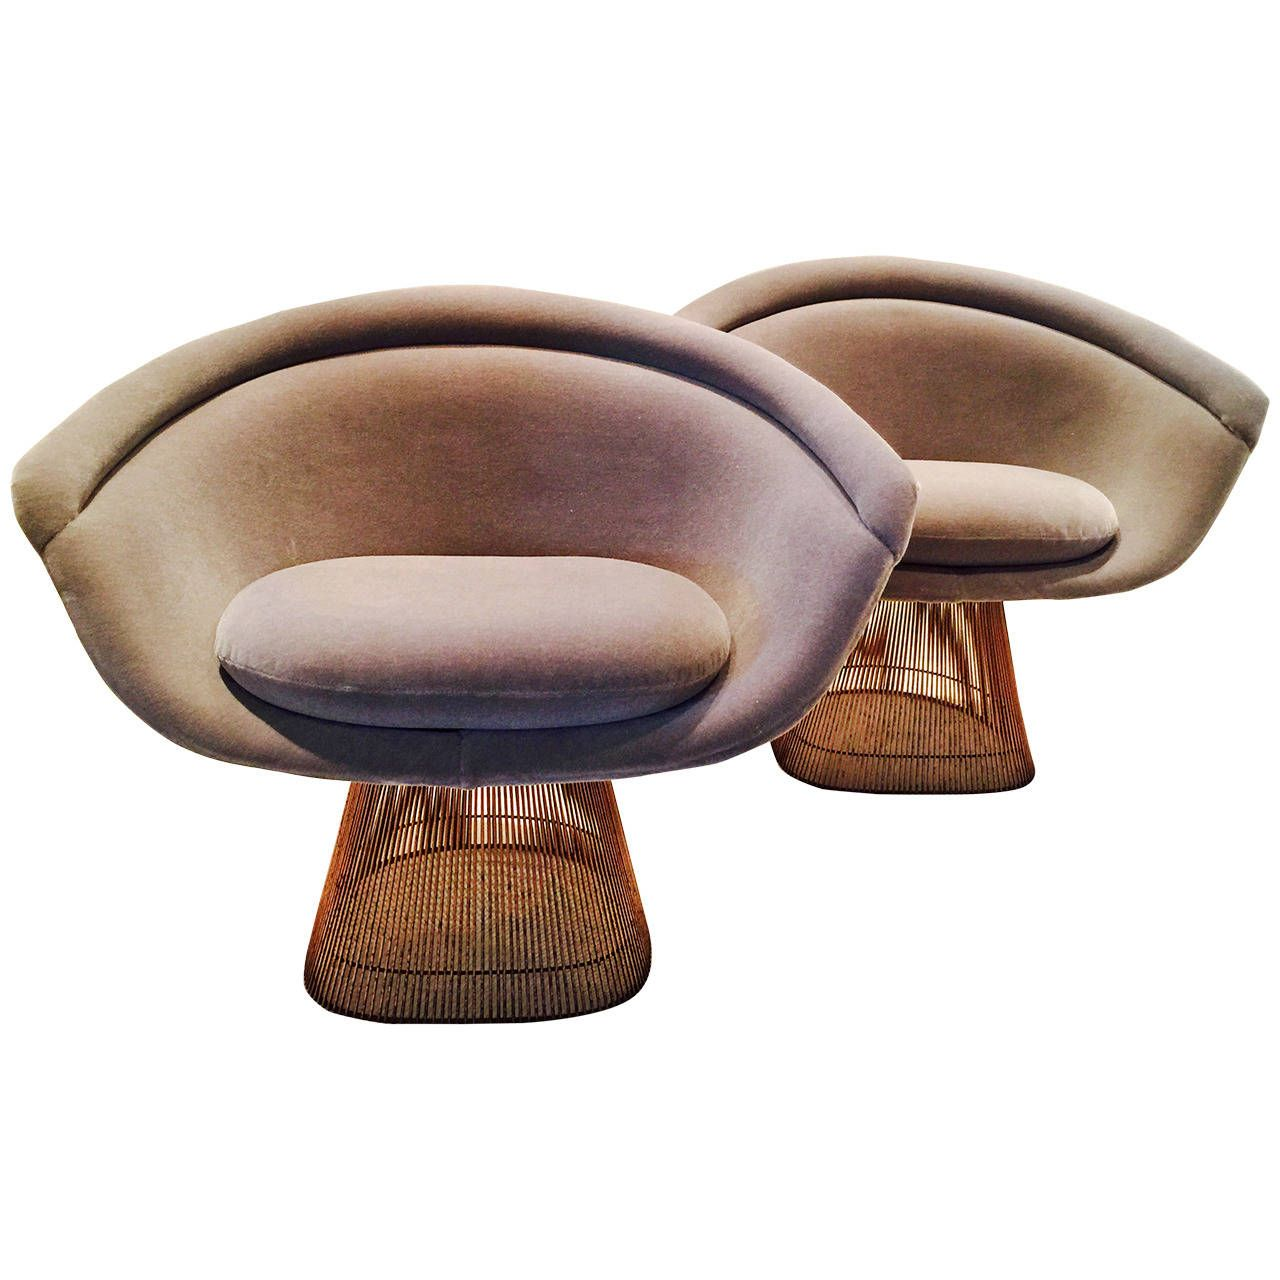 platner furniture. Pair Of Copper Warren Platner Lounge Chairs | See More Antique And Modern Armchairs At Http://www.1stdibs.com/furniture/seating/armchairs Furniture